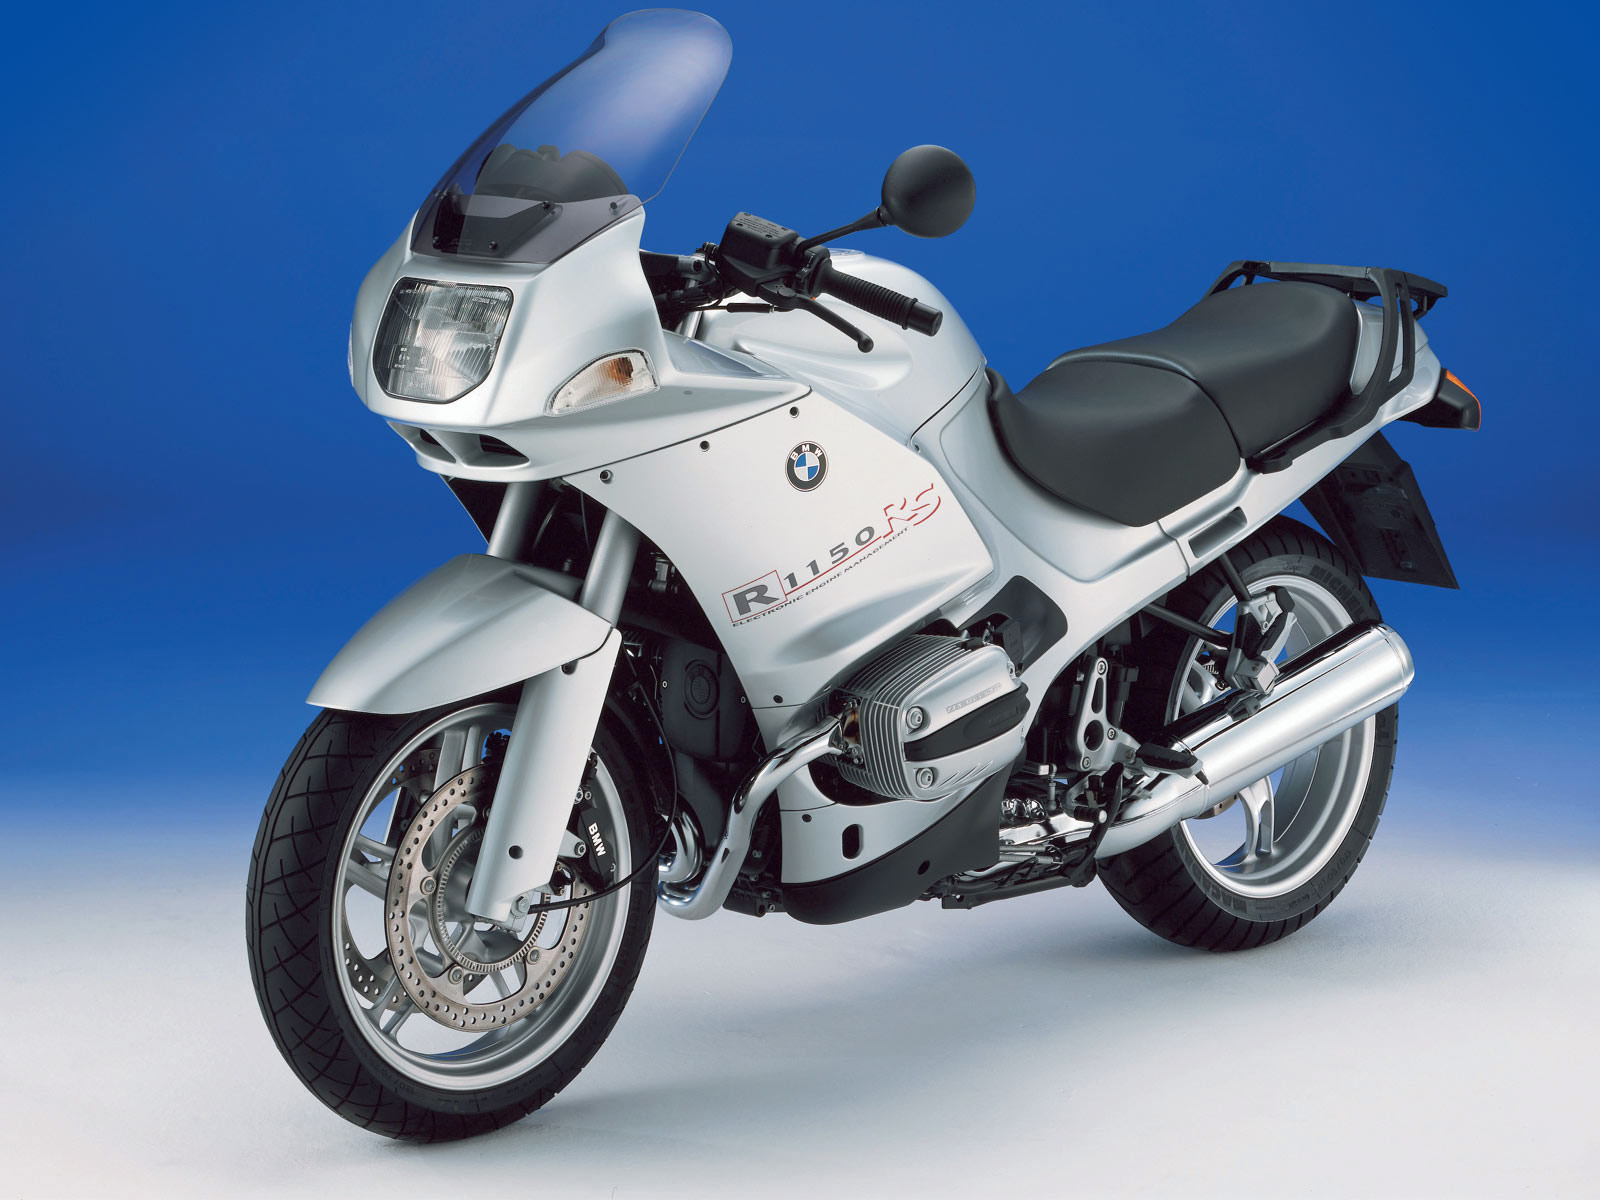 BMW R1150RS images #7026